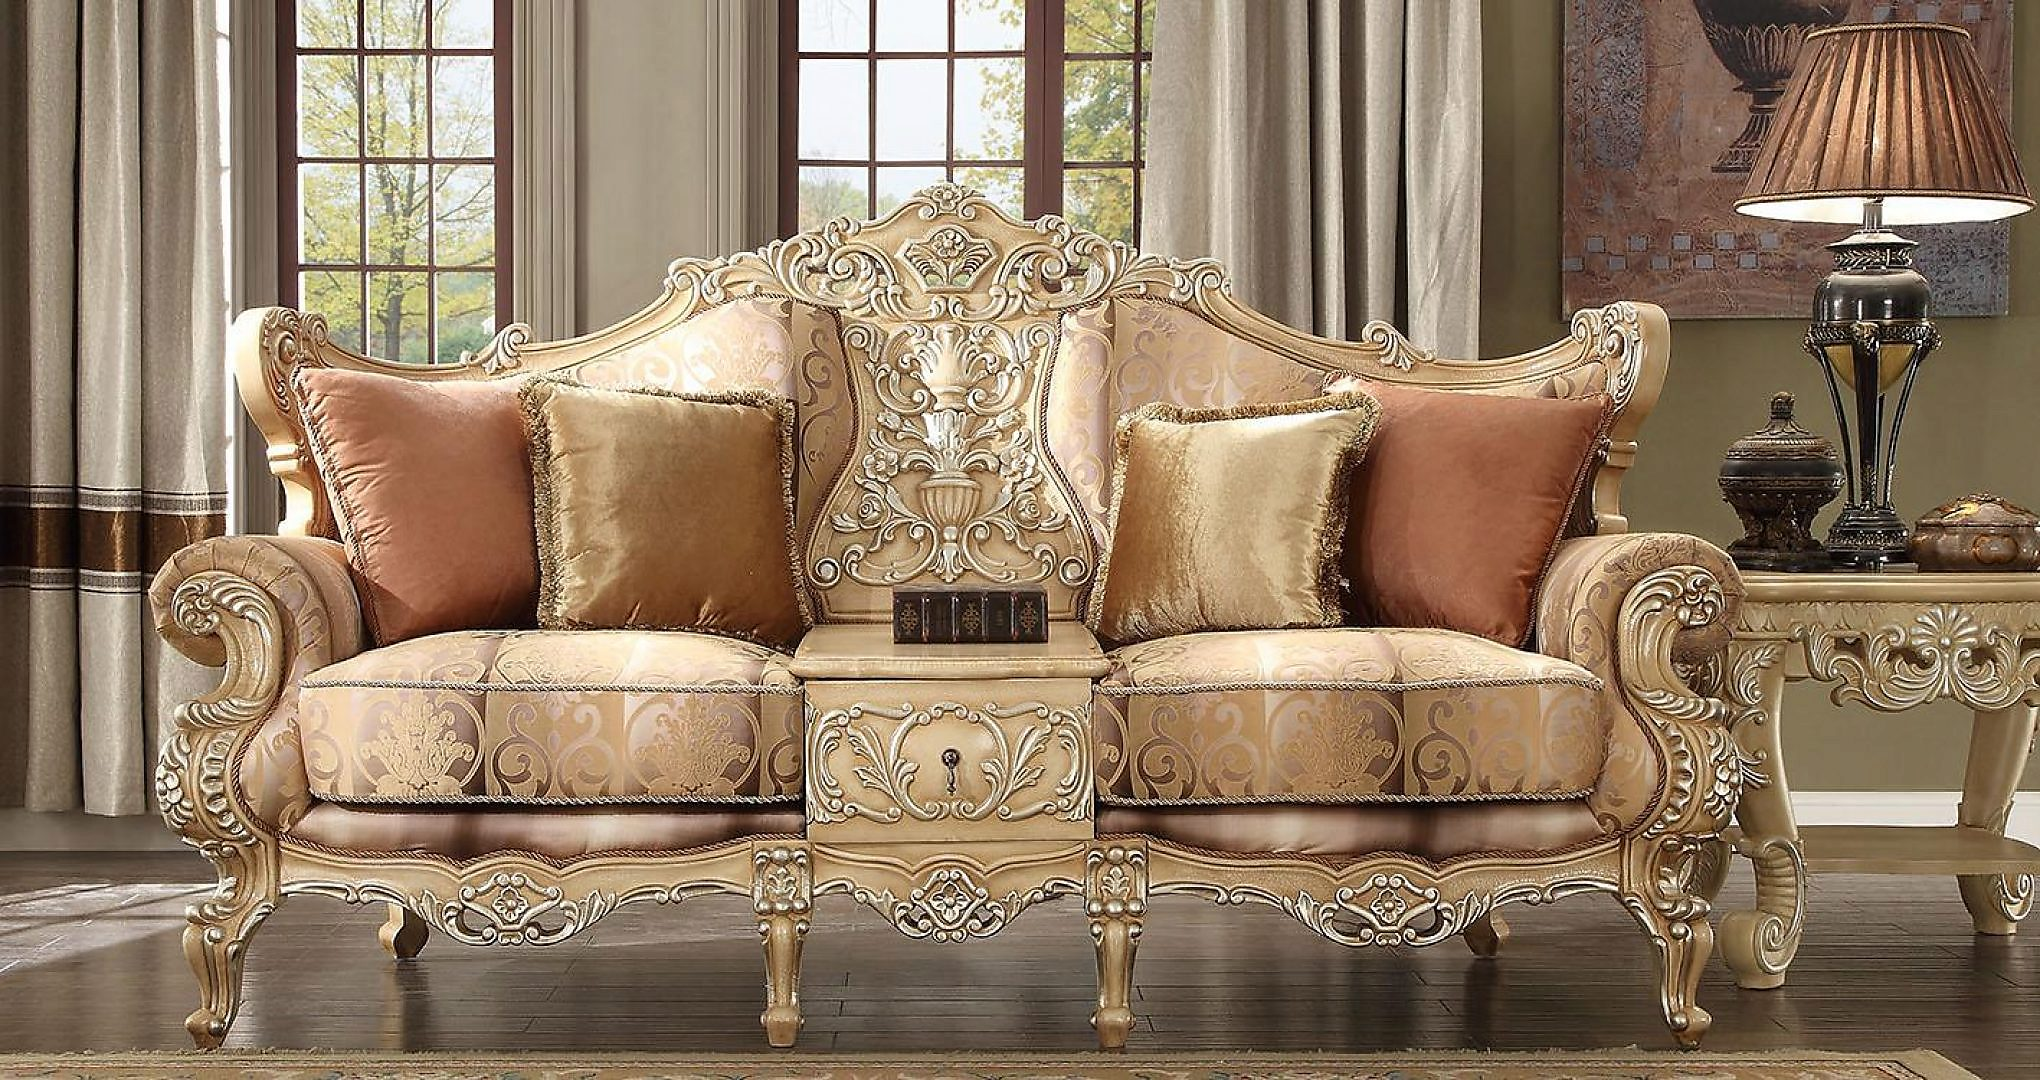 Traditional Victorian Antique HD-1633 Sofa in Gold by Homey Design